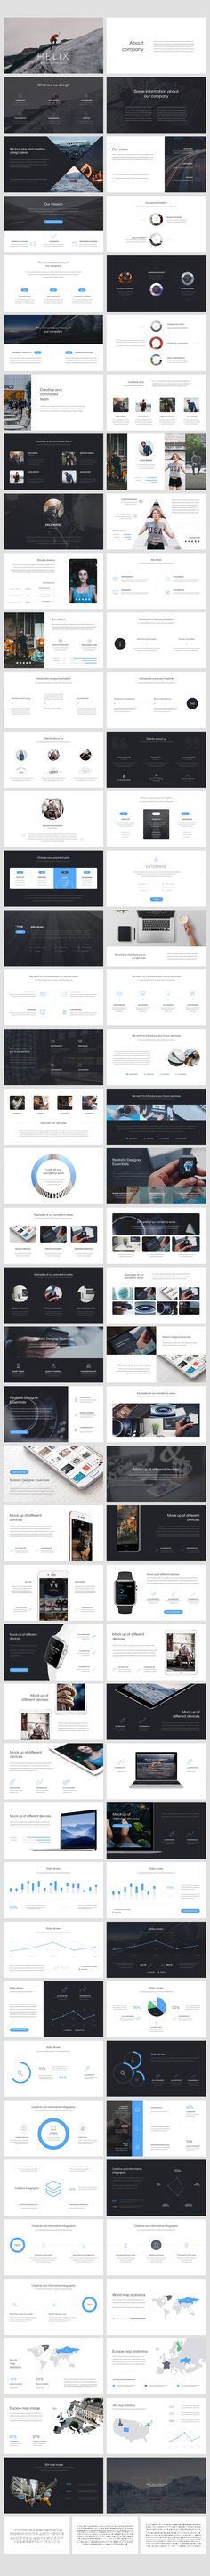 Helix PowerPoint Presentation by Entersge on @creativemarket